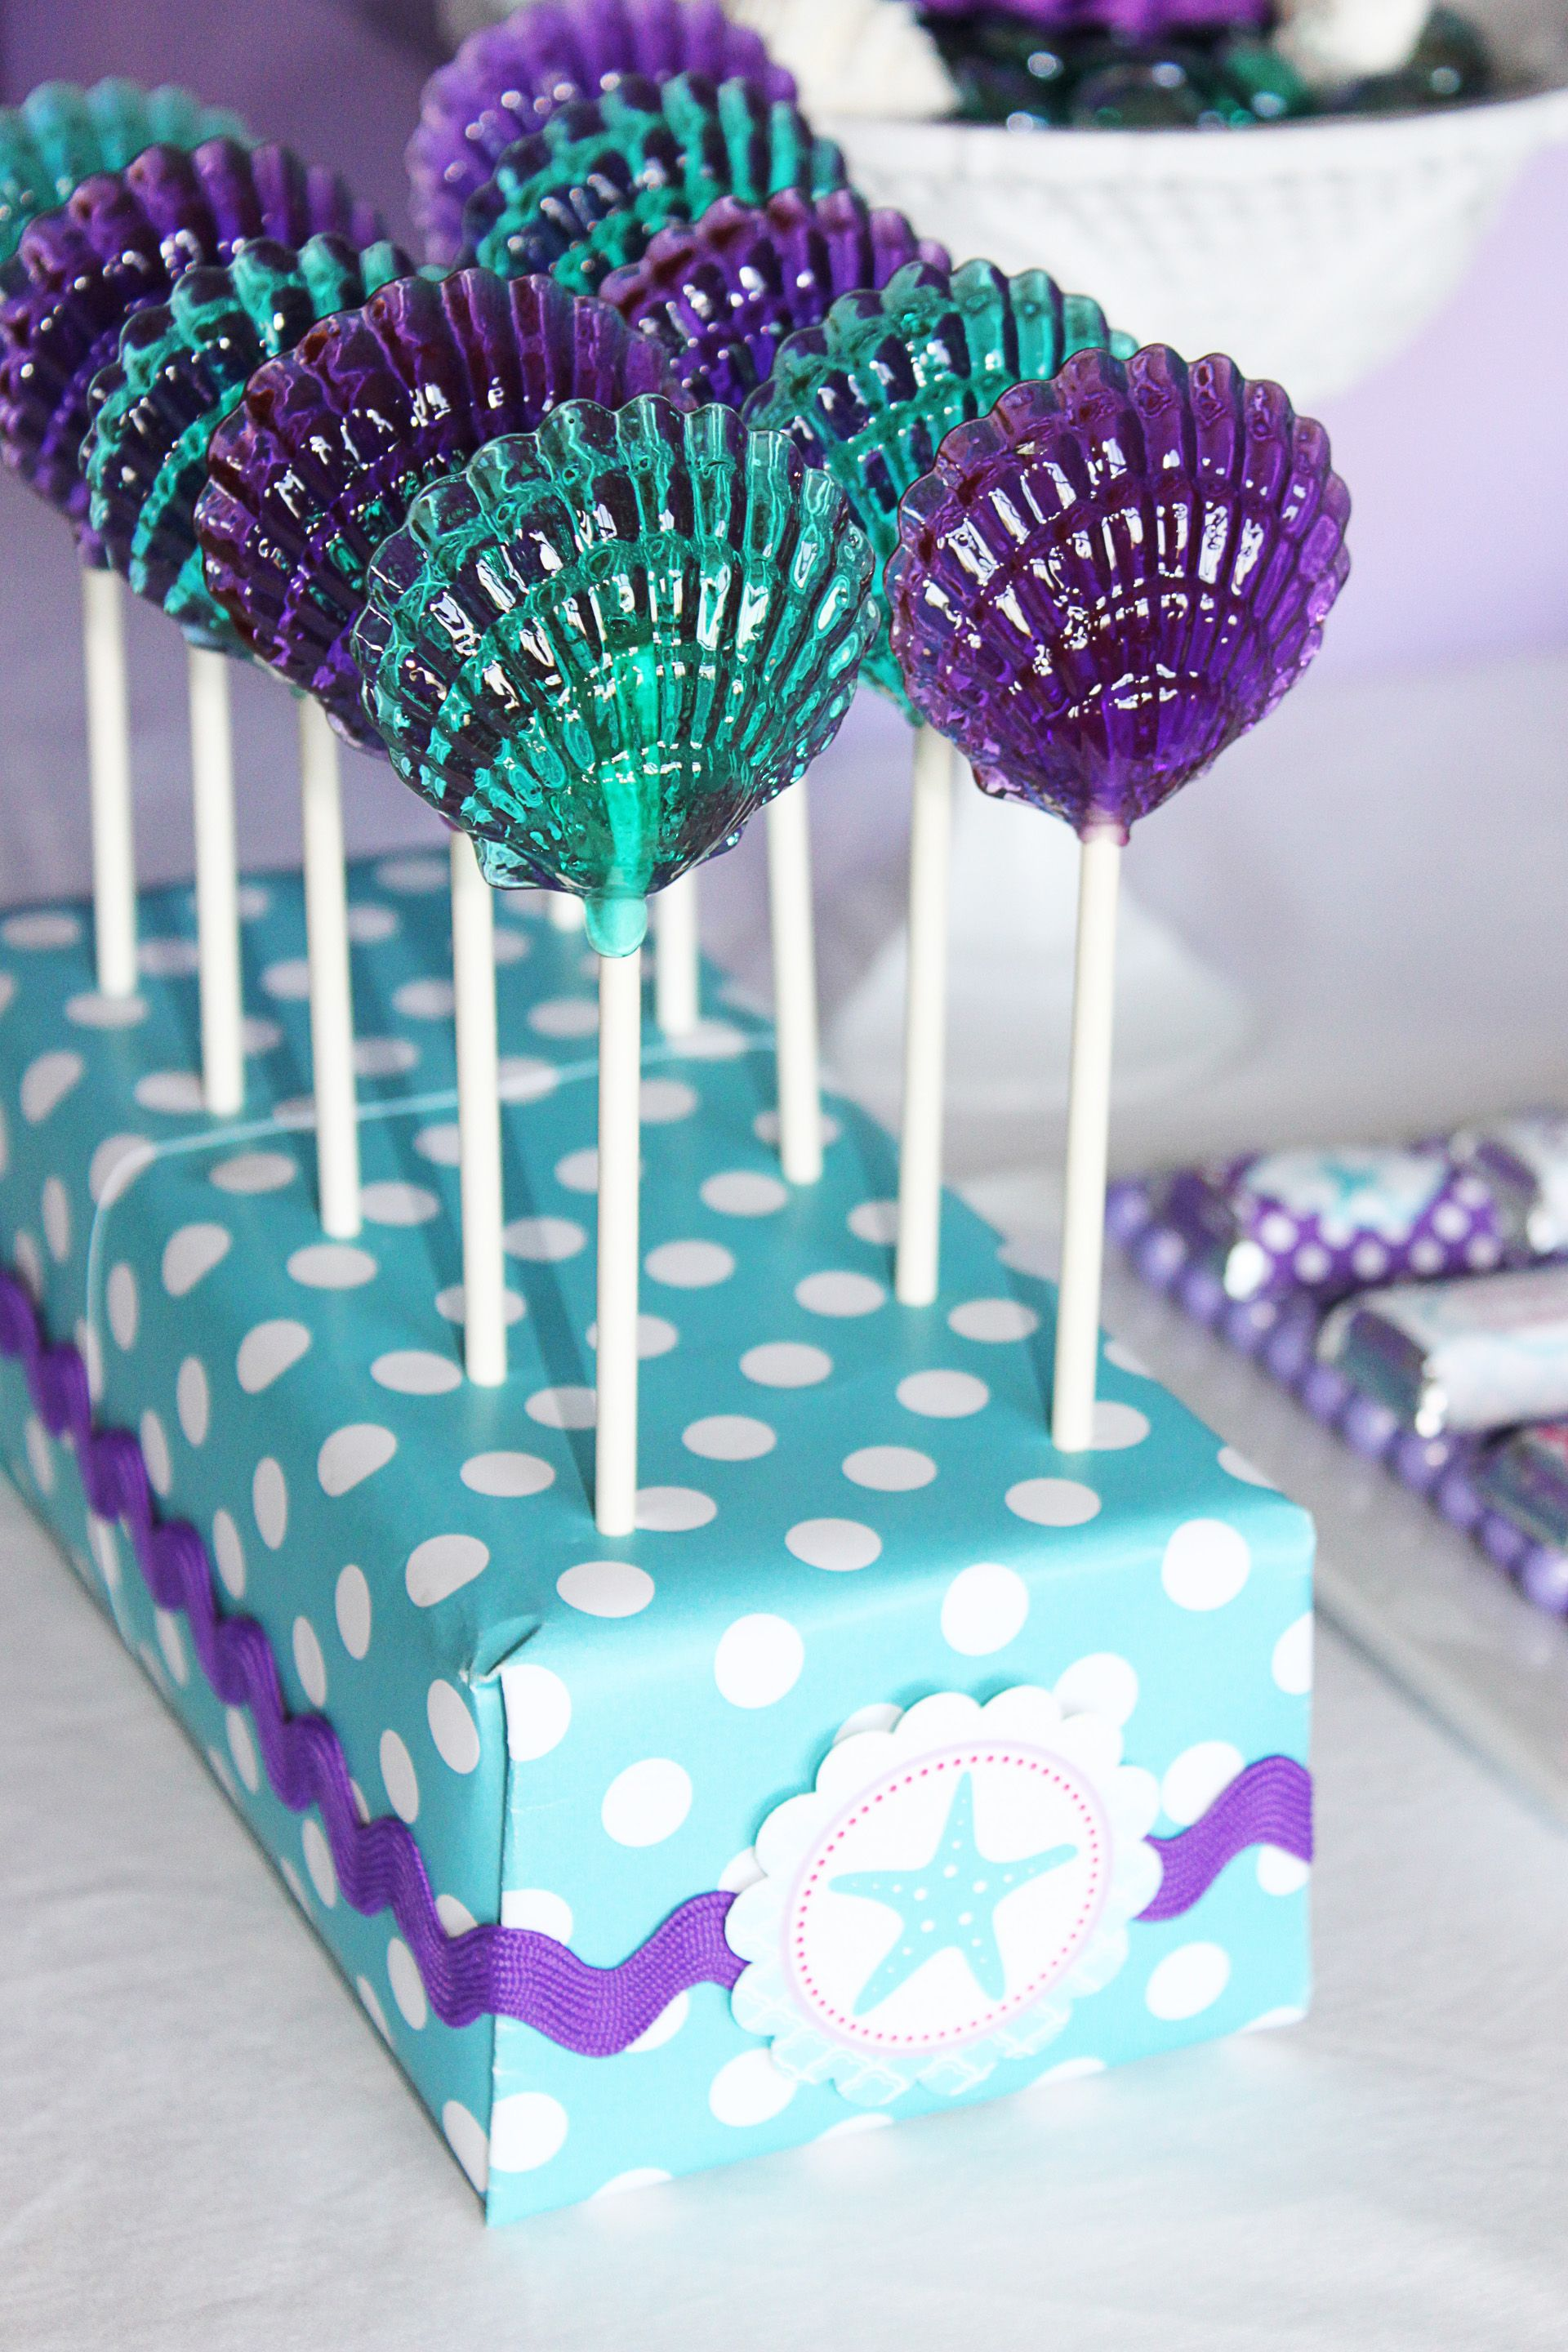 ideas henol inside shower decorations me awesome vectorsecurity theme party baby fabulous favors decoration